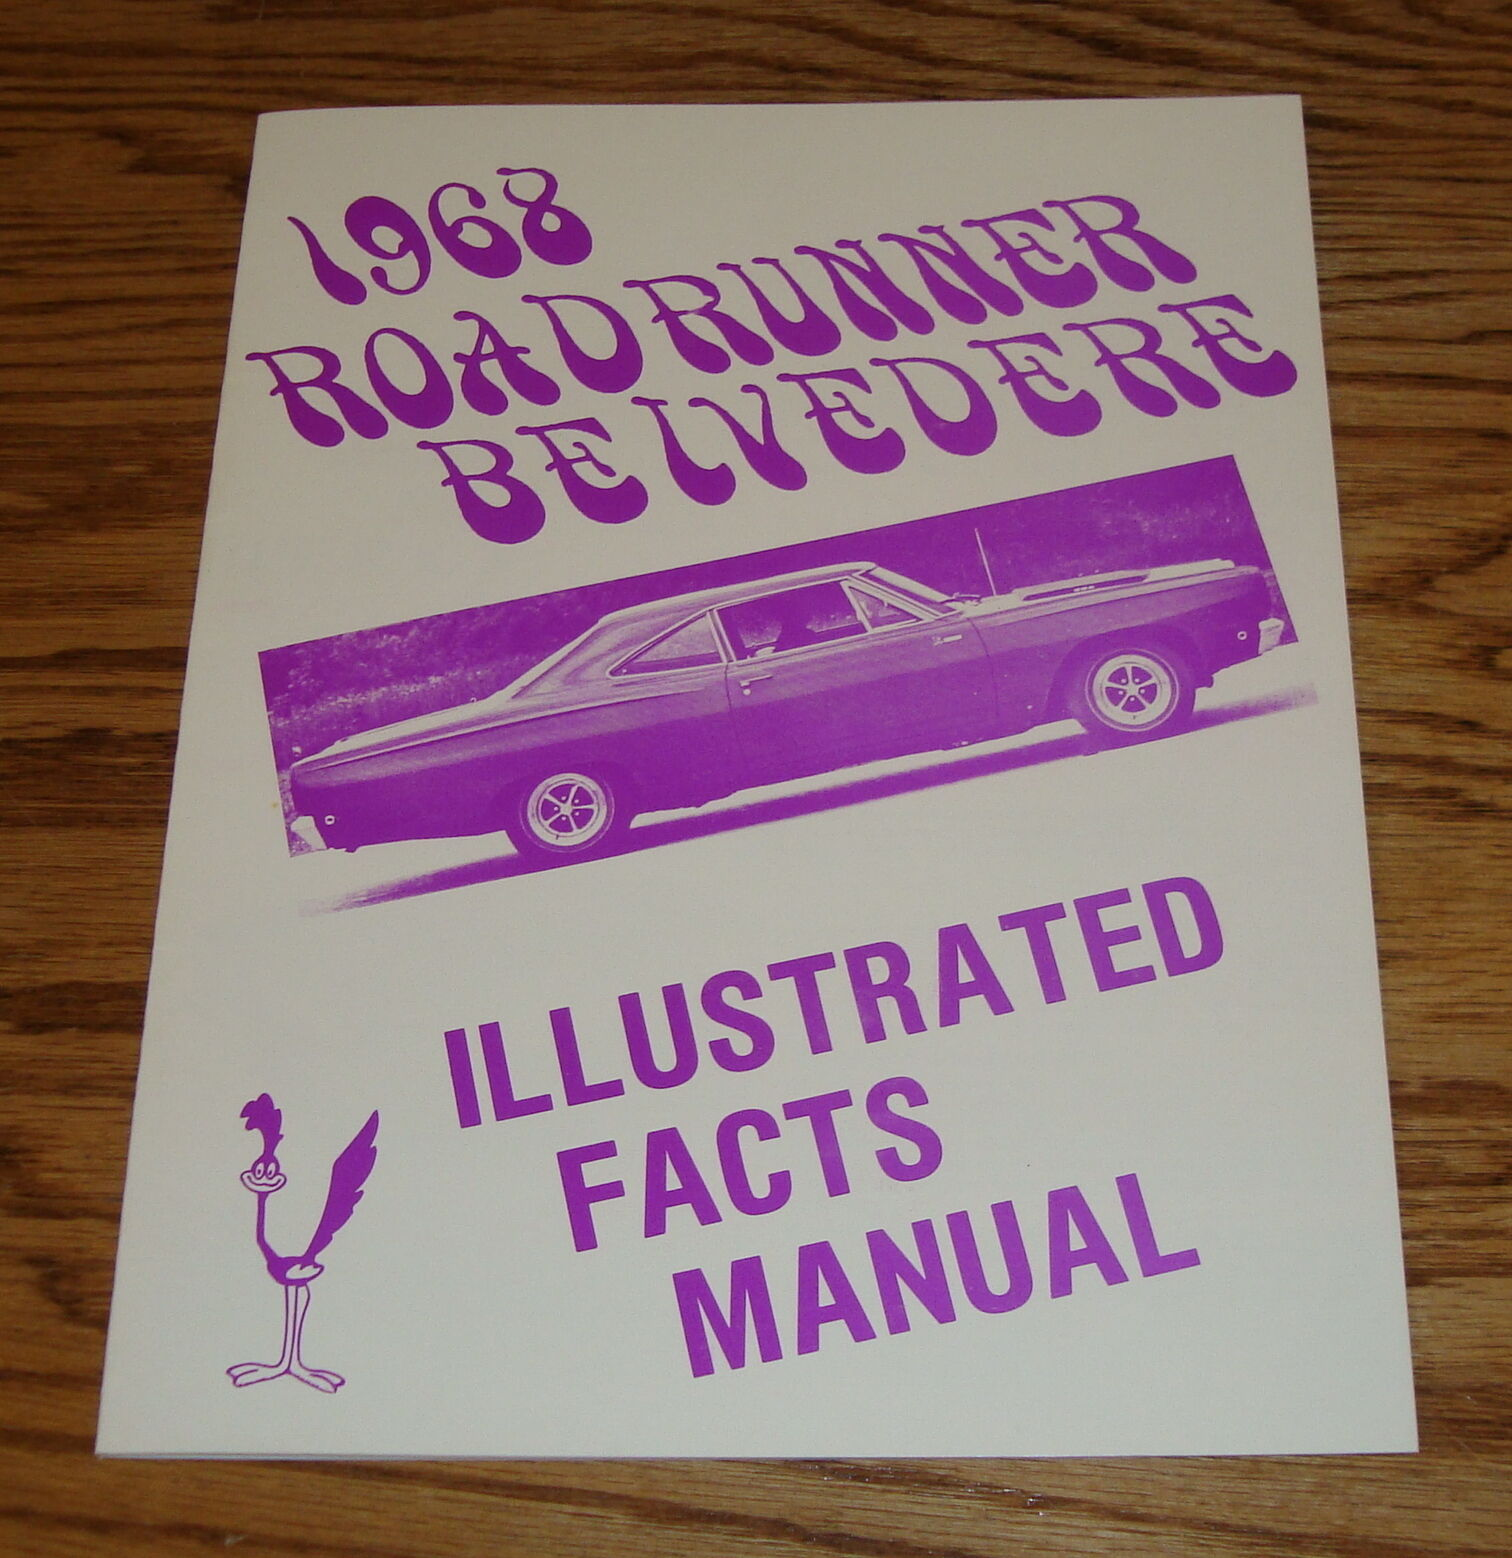 1968 Plymouth Belvedere GTX Road Runner Illustrated Facts Manual 68 1 of 1  See More